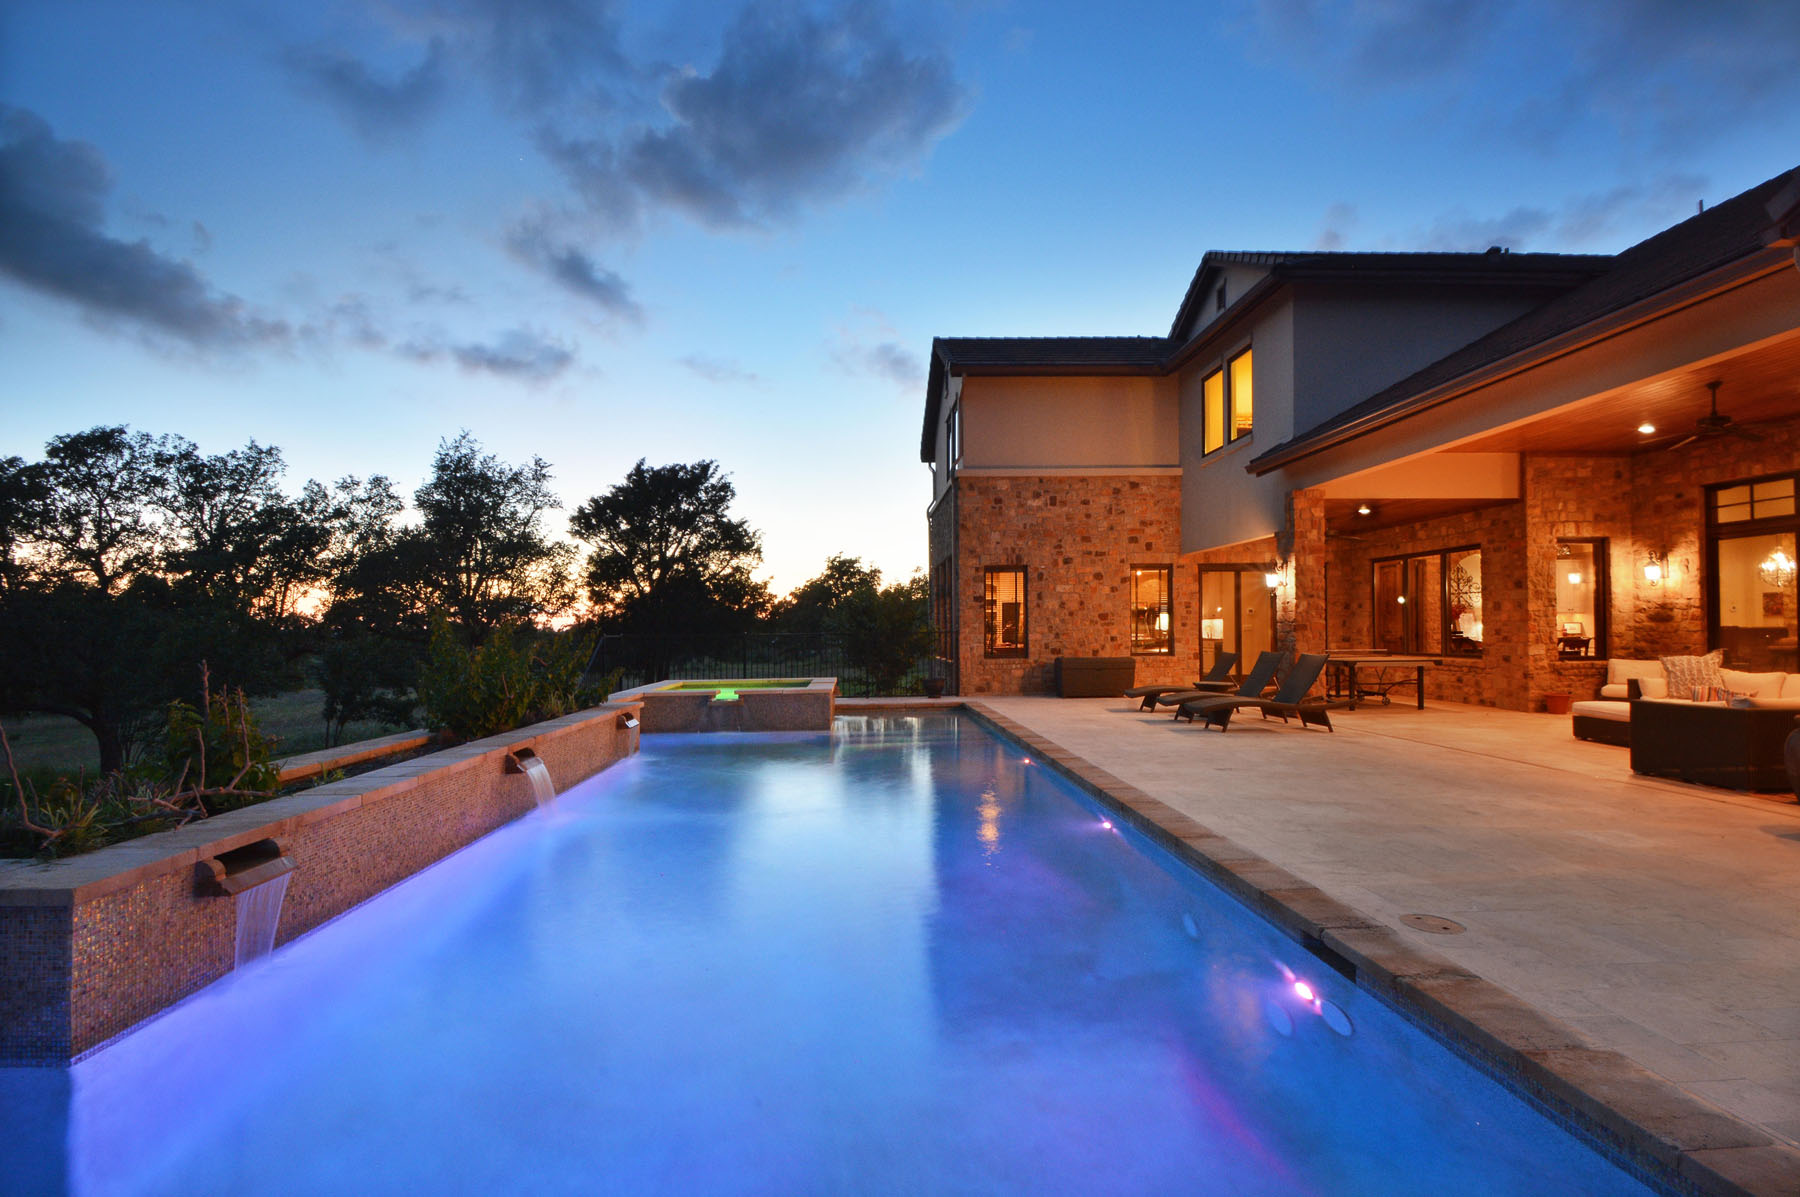 Single Family Home for Sale at Fabulous Views and Privacy 8041 Carlton Ridge Cv Austin, Texas, 78738 United States